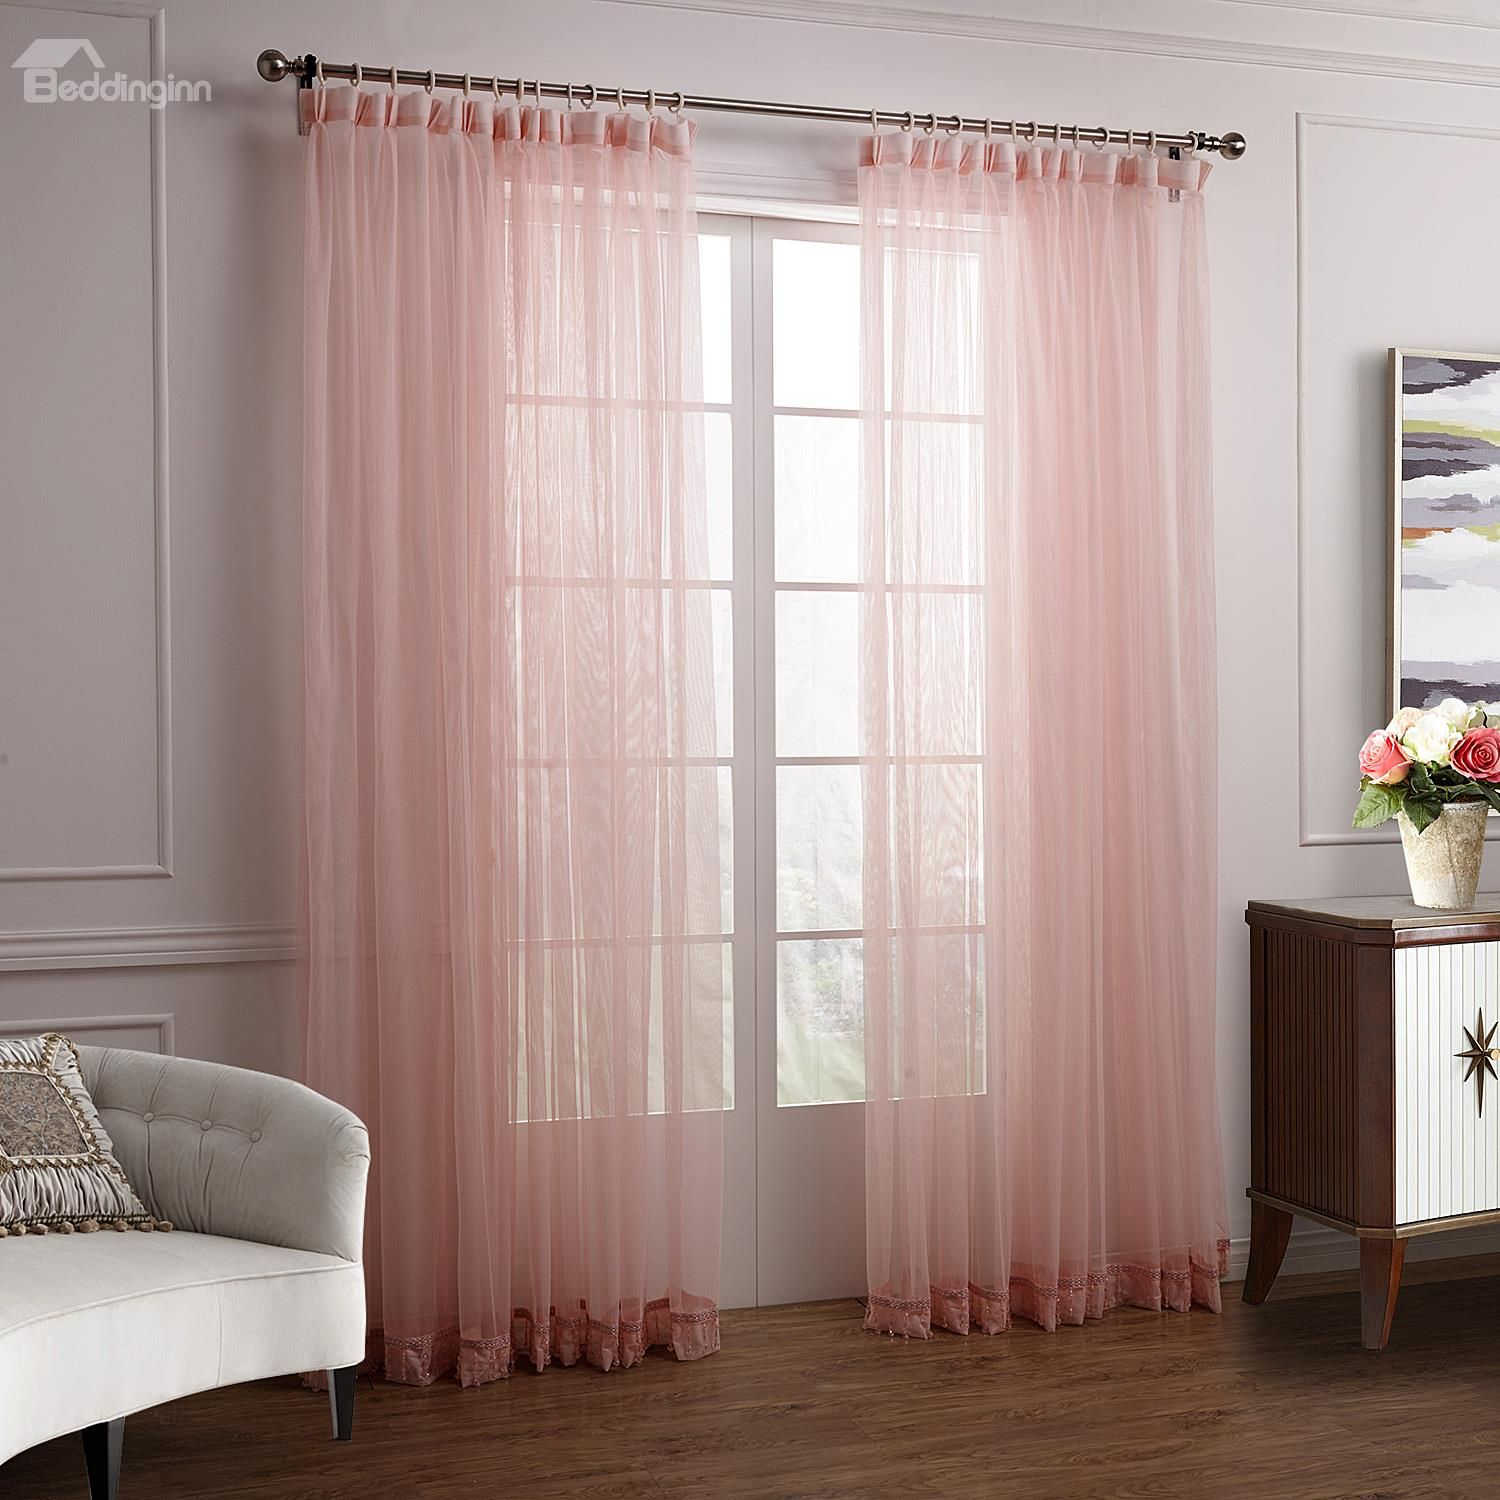 Wonderful Lovely Elegant Pink Cinderella Custom Sheer Within Luxury Collection Summit Sheer Curtain Panel Pairs (View 10 of 20)